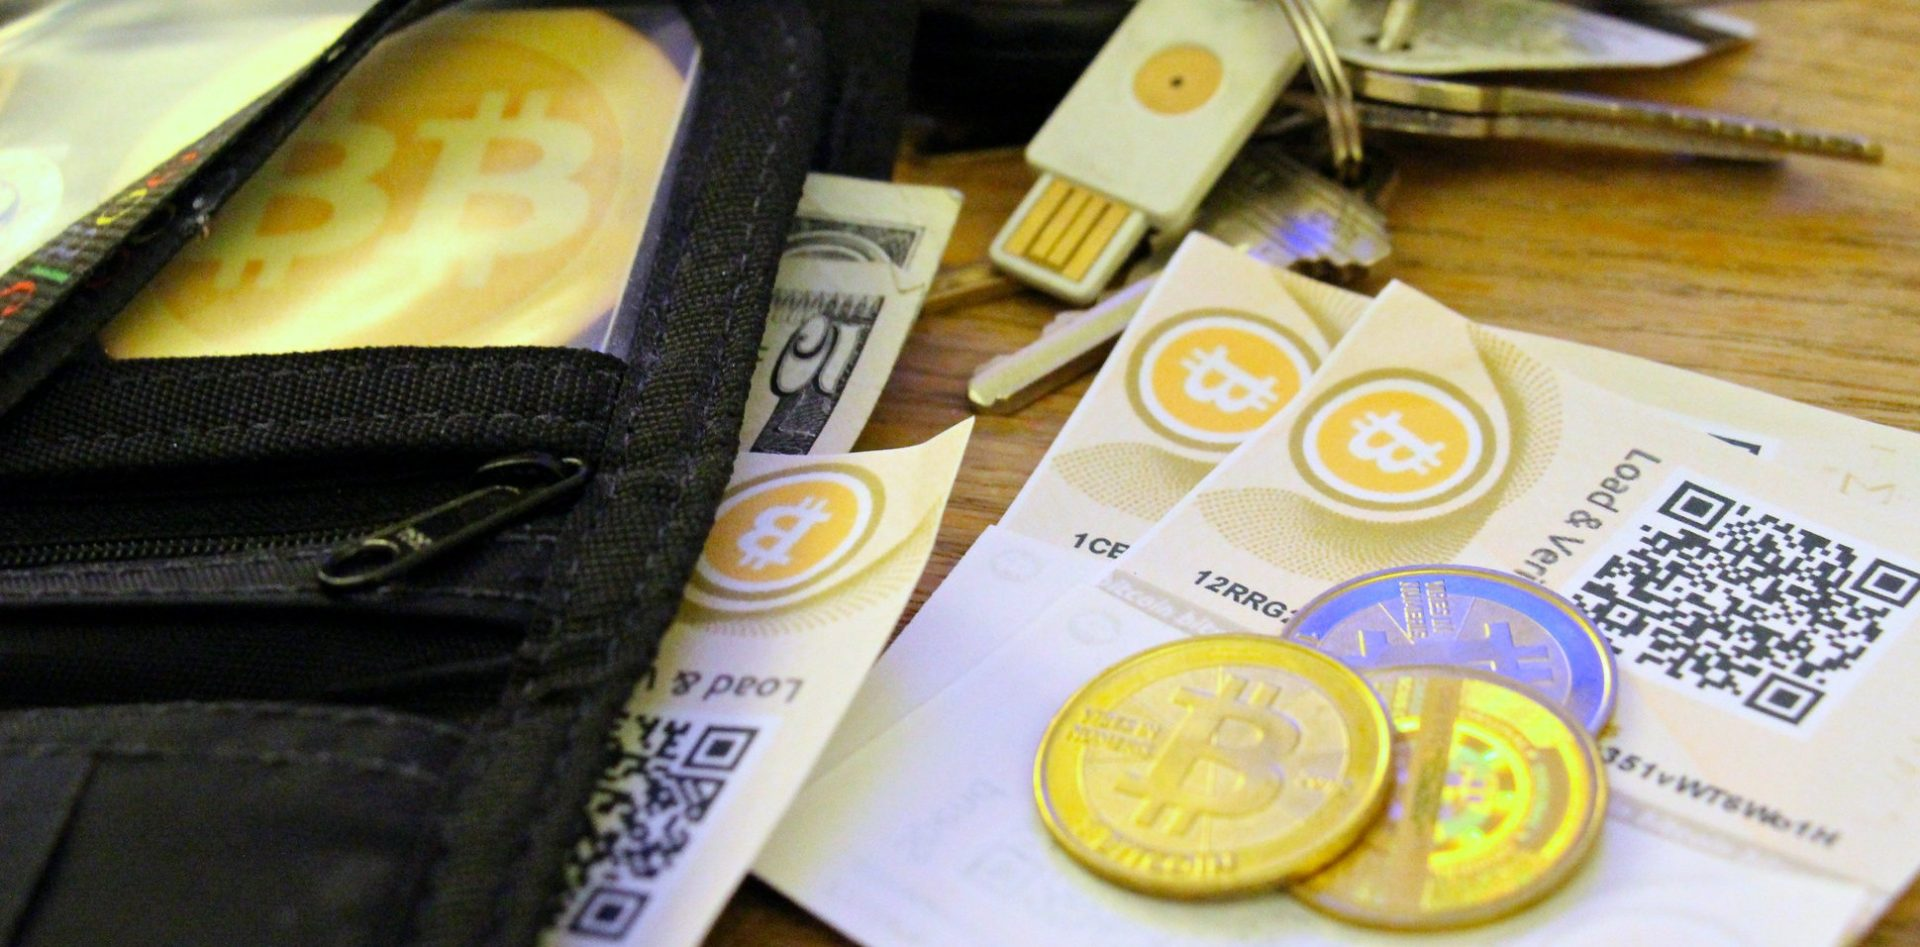 Ignoring or downplaying cryptocurrency critics will not make them go away.